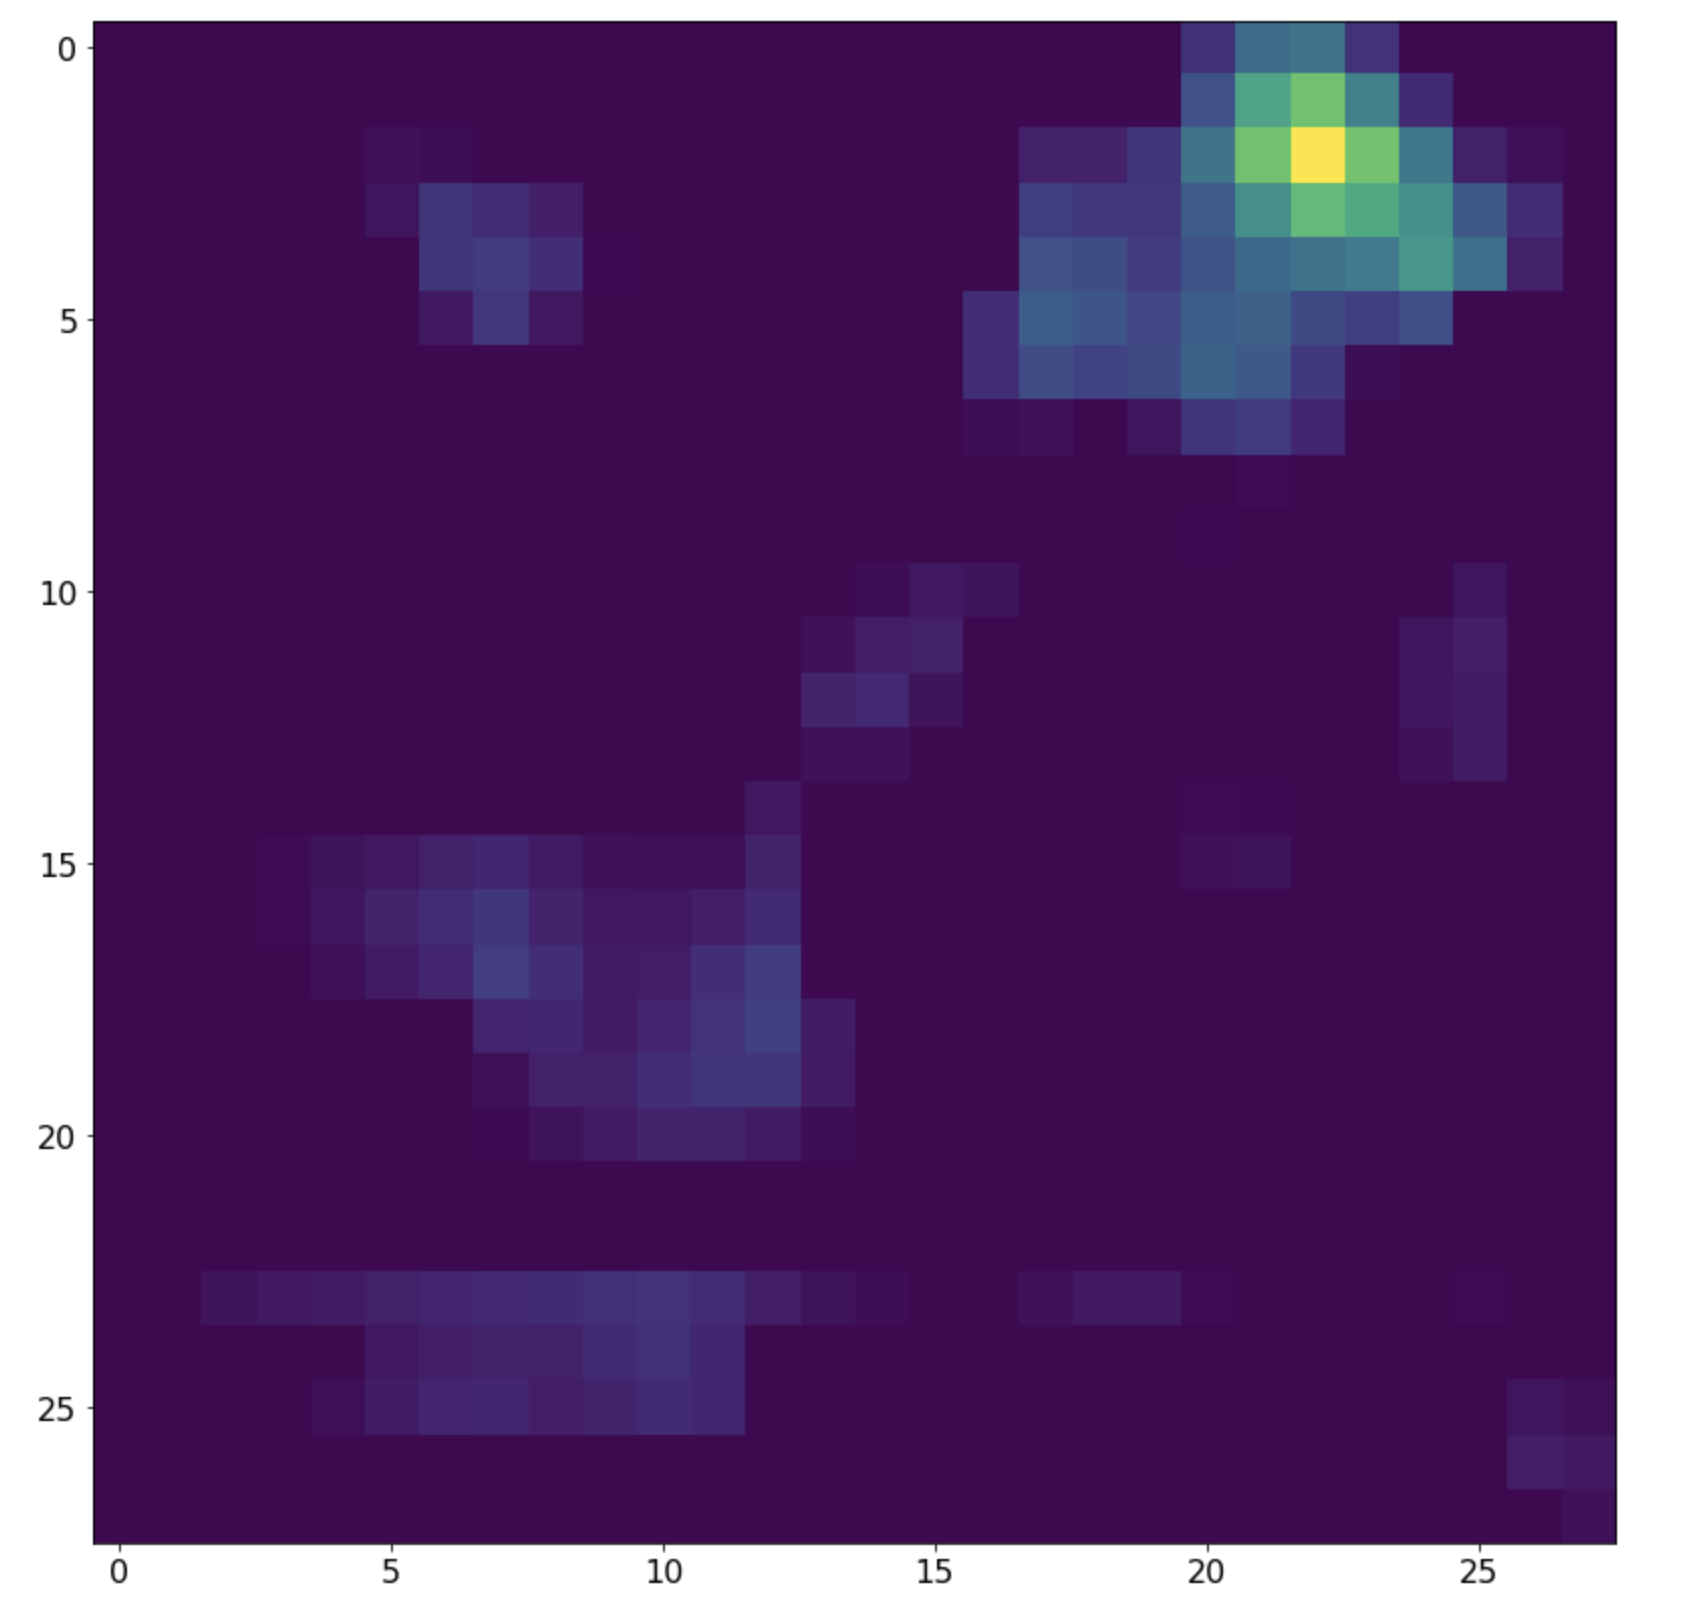 A channel from the final tensor represented as a heatmap